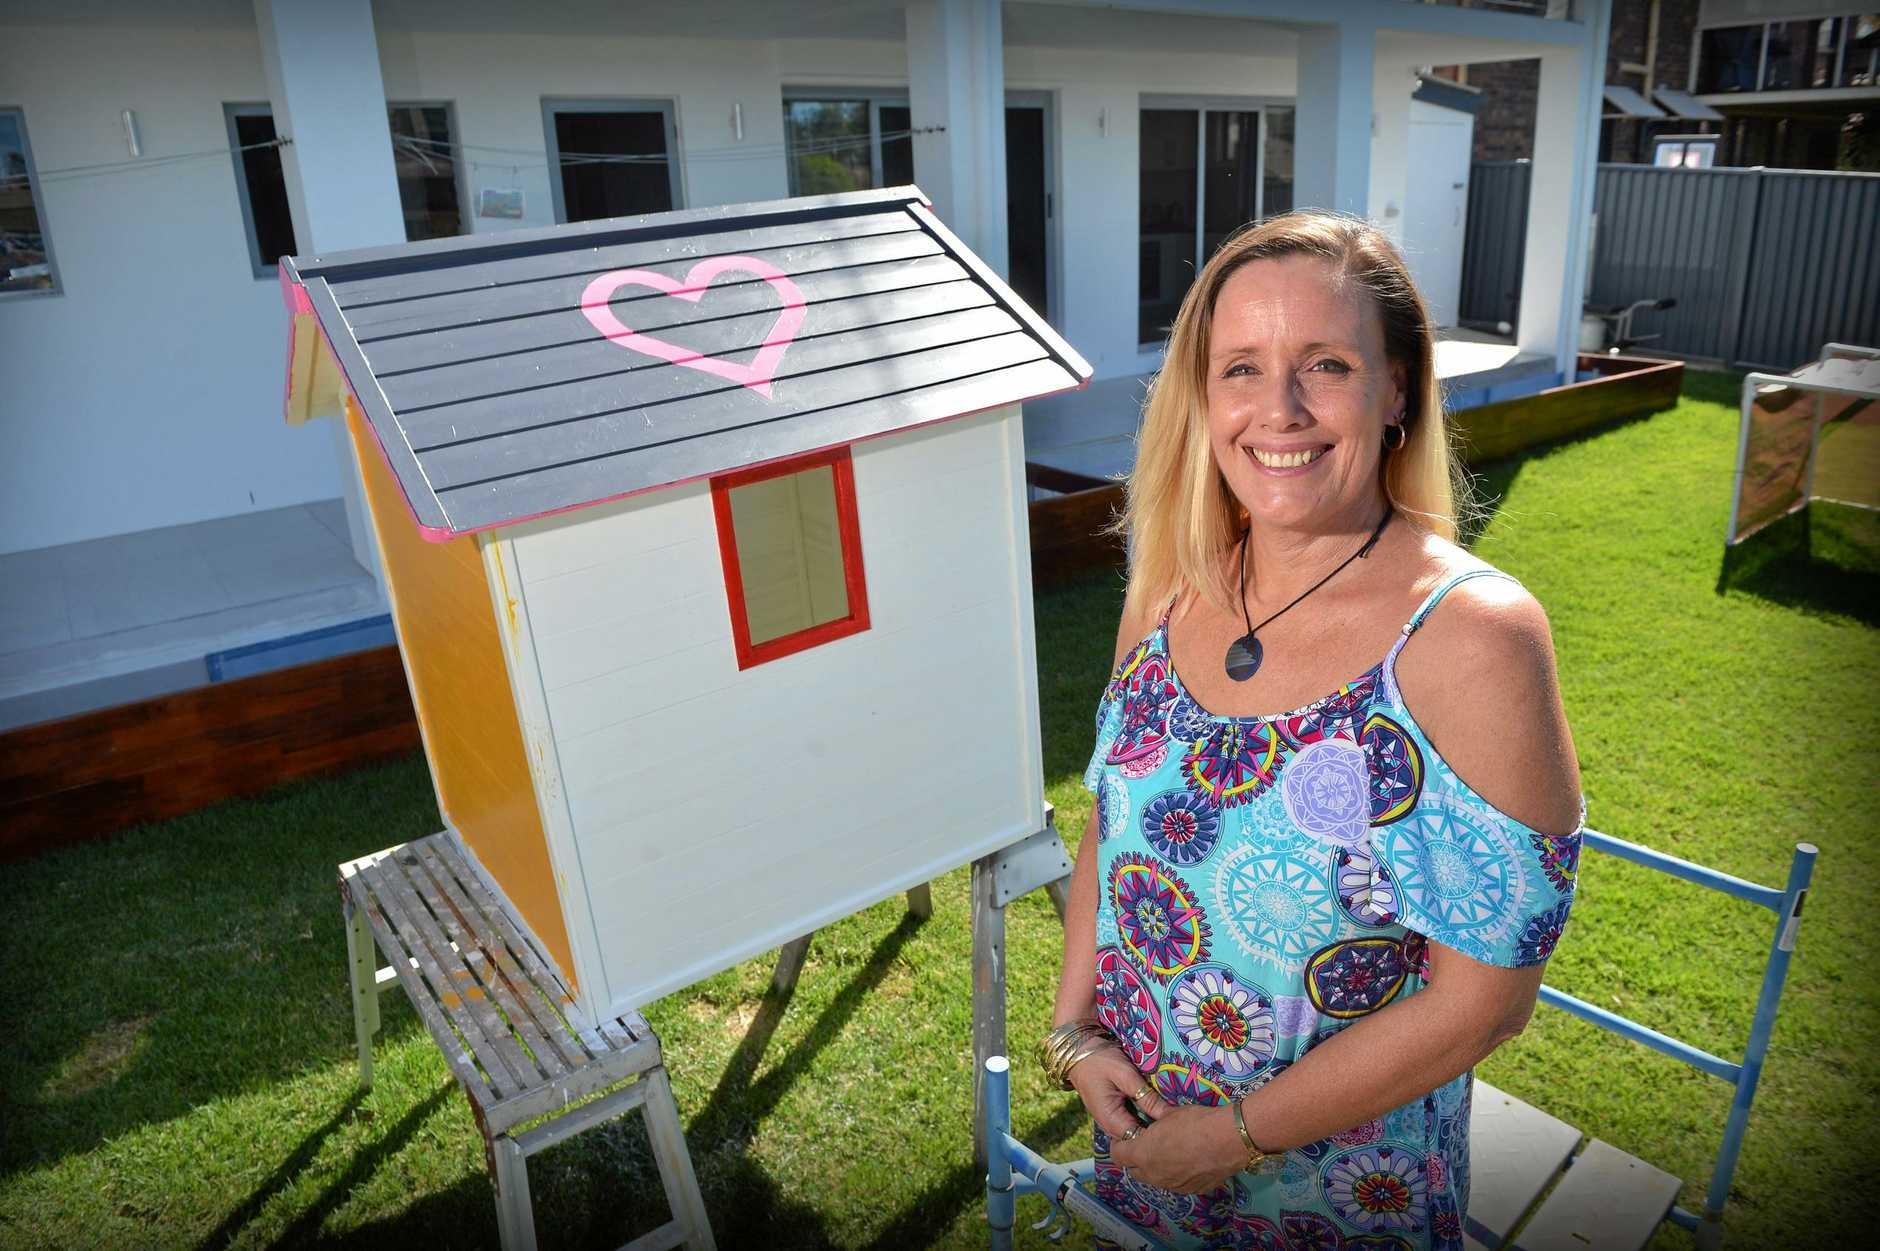 TOUCHING: Allona Lahn and her husband Grant have painted a giant heart on the roof of thier Mooloolaba home so their stillborn baby Lexi can find her way home.